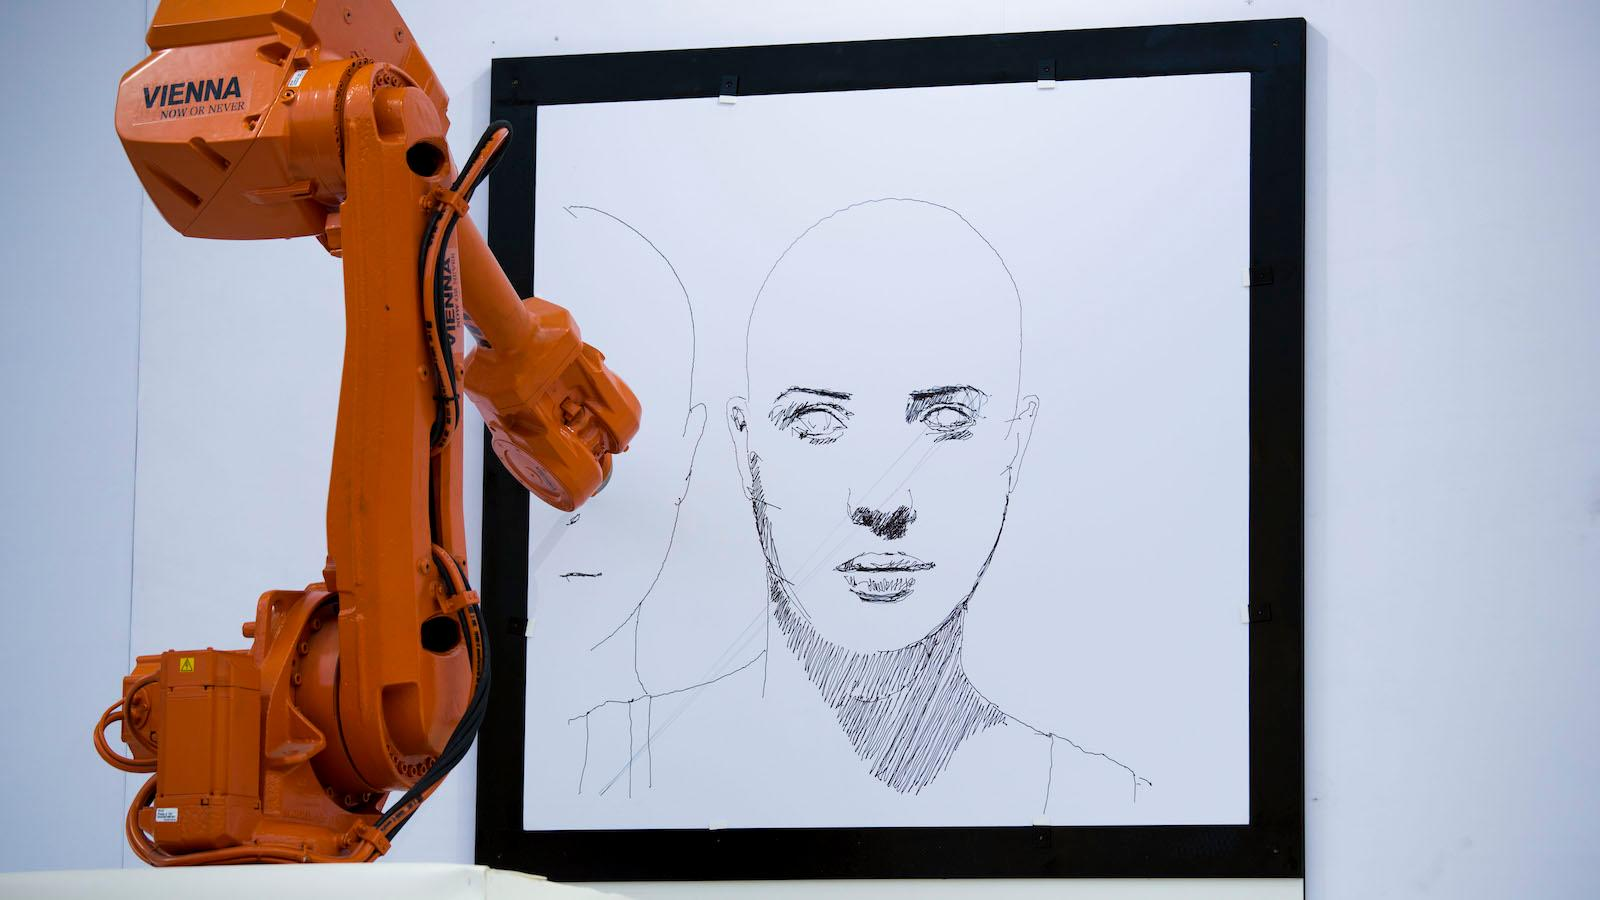 robot-making-art-painting-drawing1